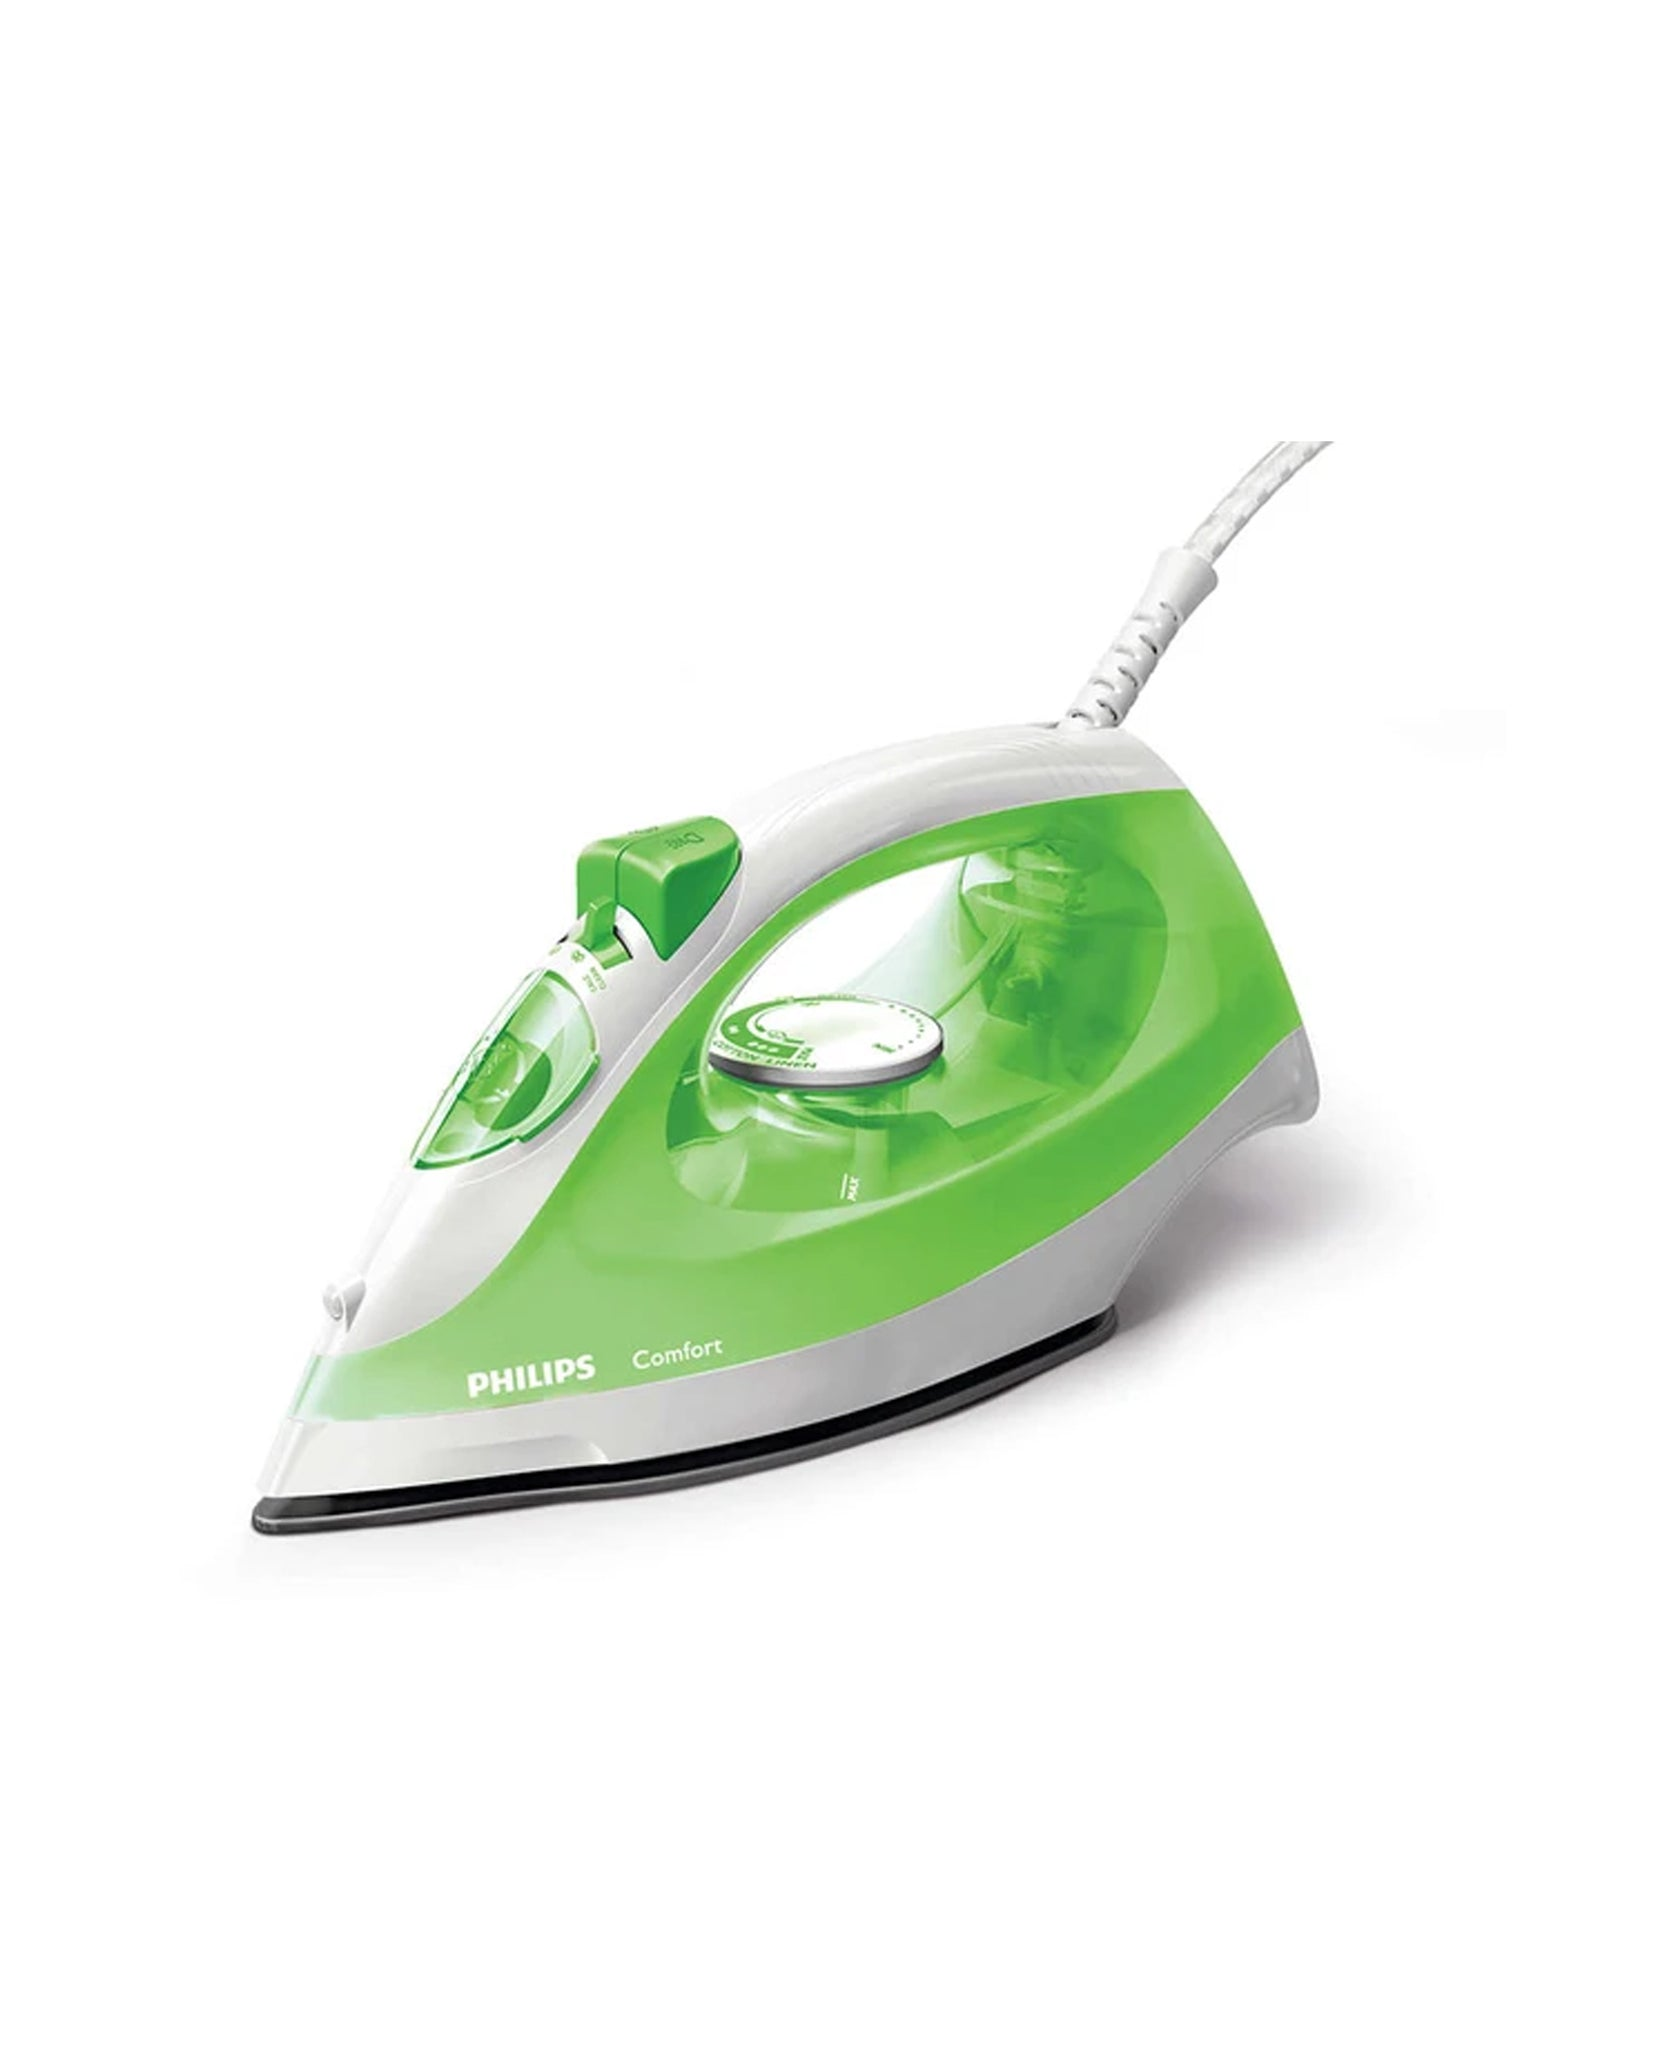 Philips Steam iron (green) GC1434-70